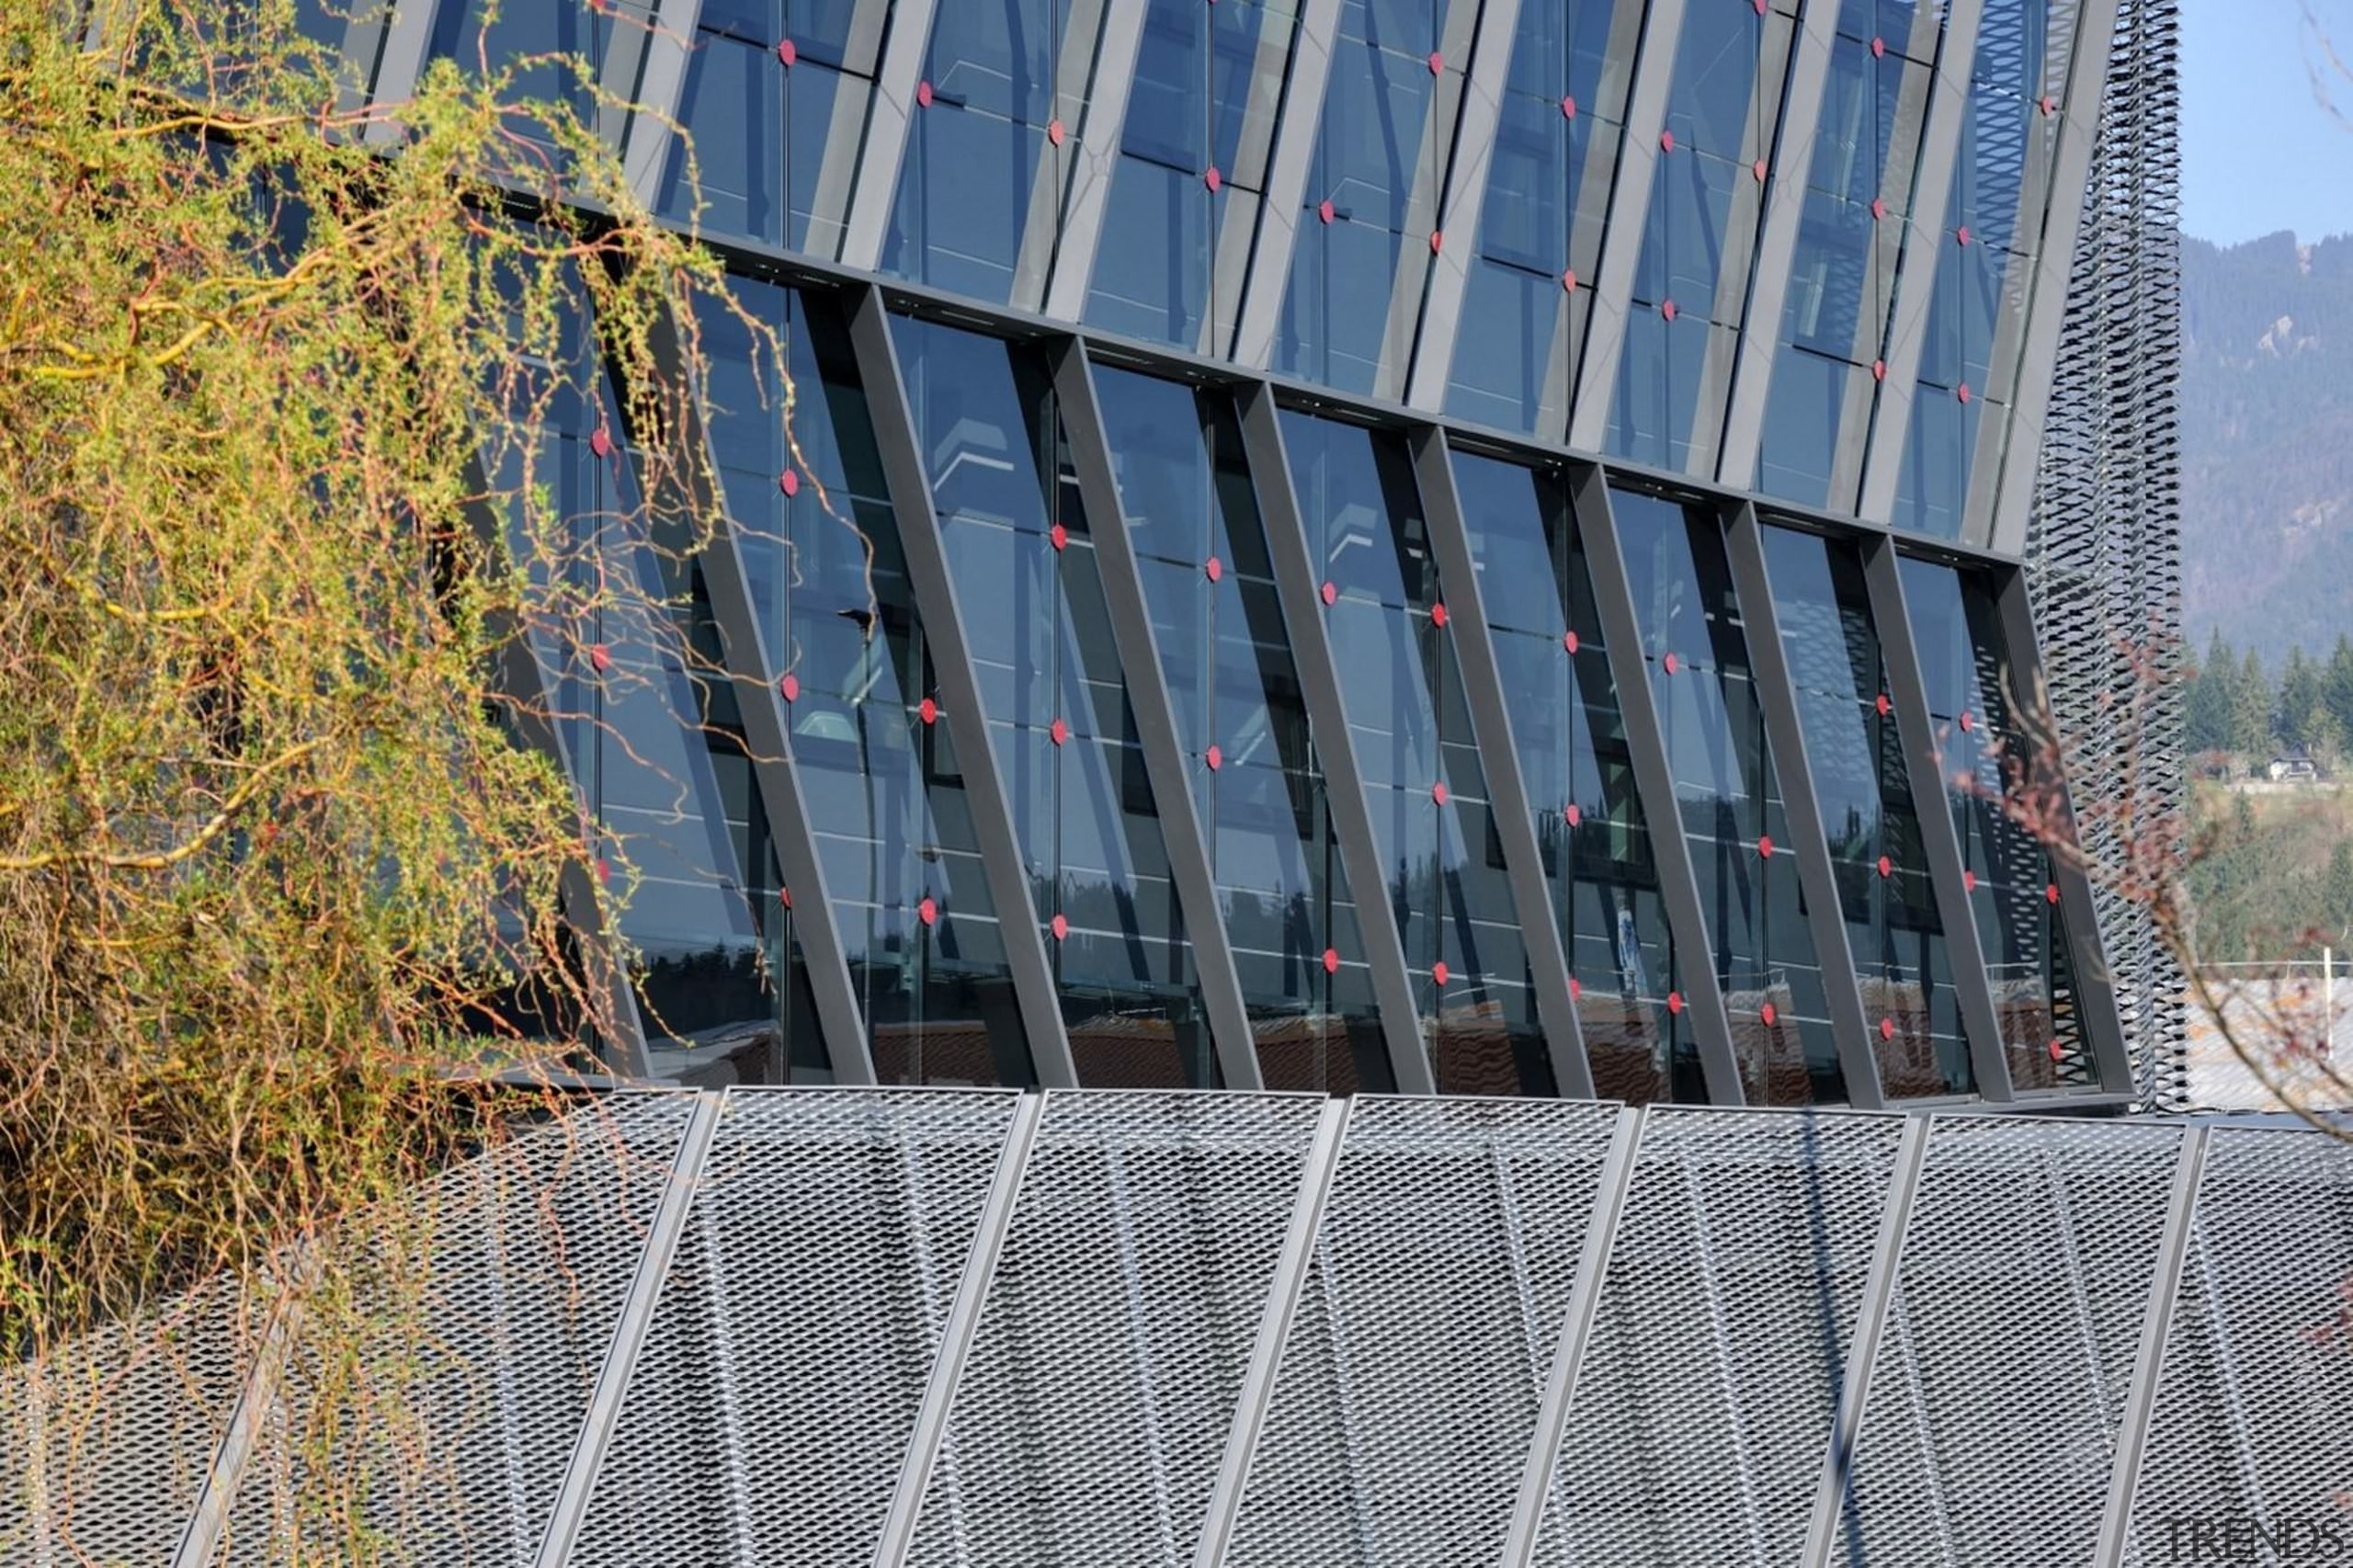 Architect: SuperformPhotography by Miran Kambič architecture, building, facade, fence, grass, landmark, residential area, structure, tree, urban area, gray